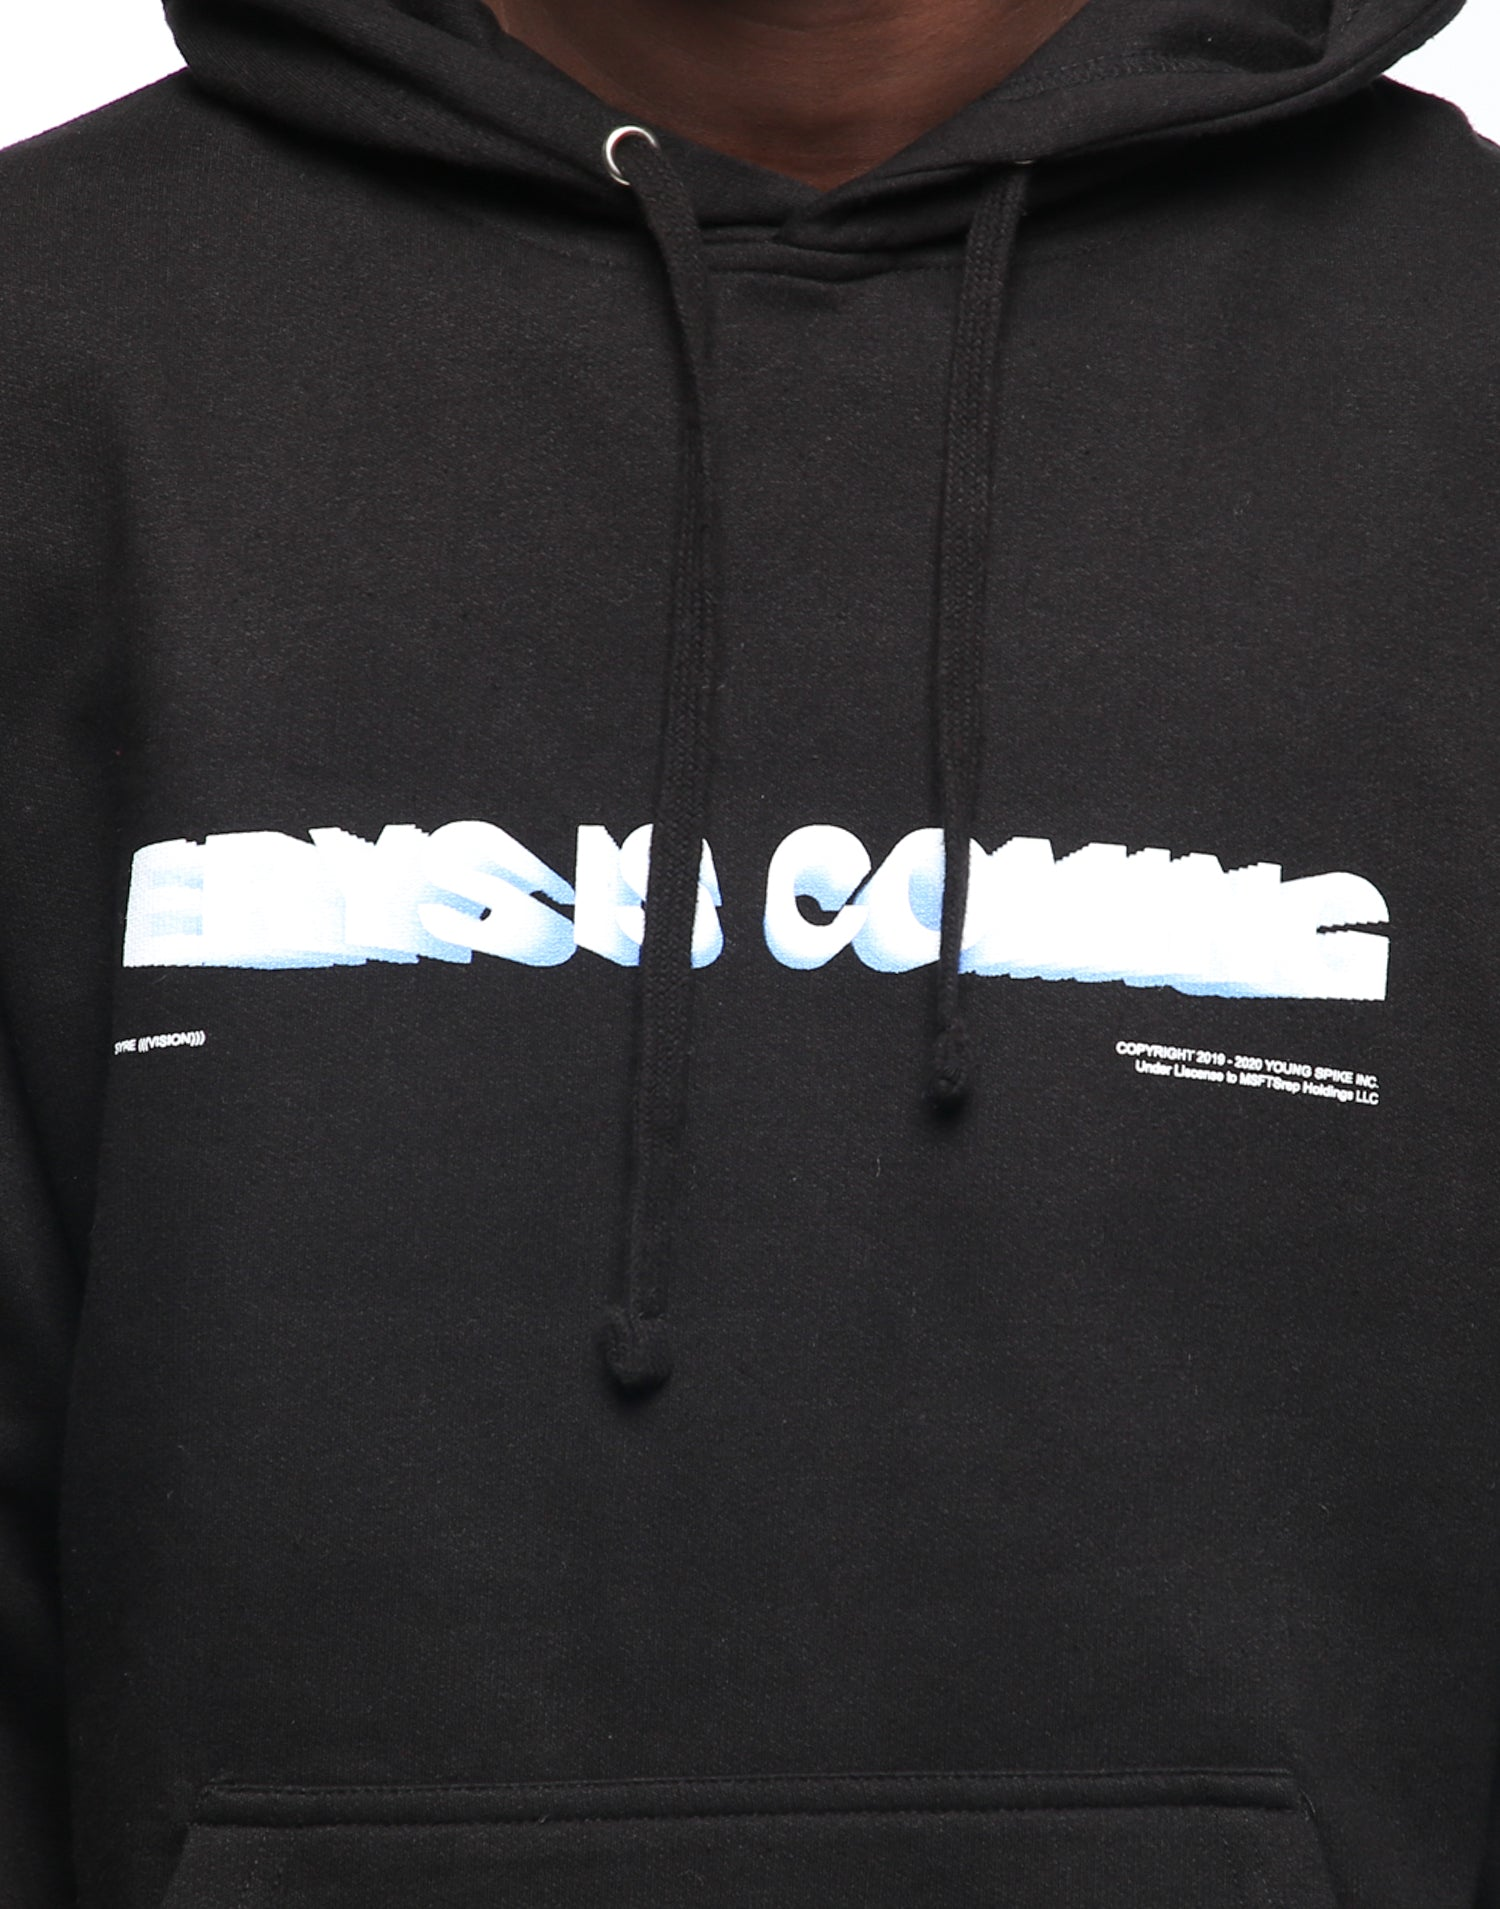 S M Case IH Youth Black Hoodie Sizes L or XL